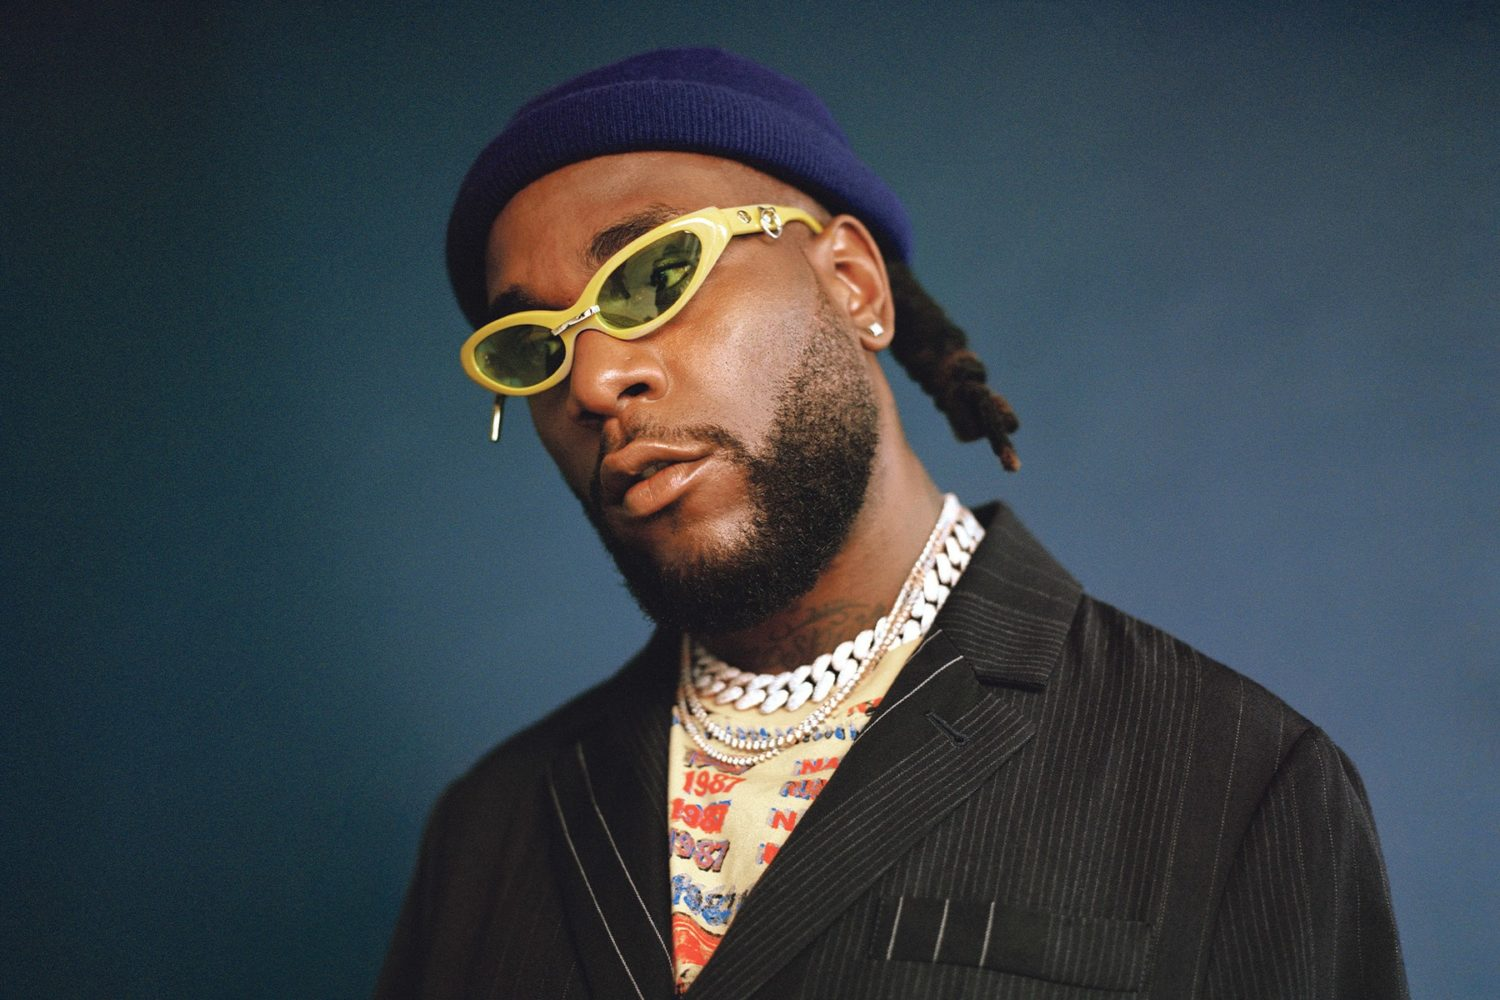 EndSARS: Burna Boy finally bows to pressure as he joins the protest